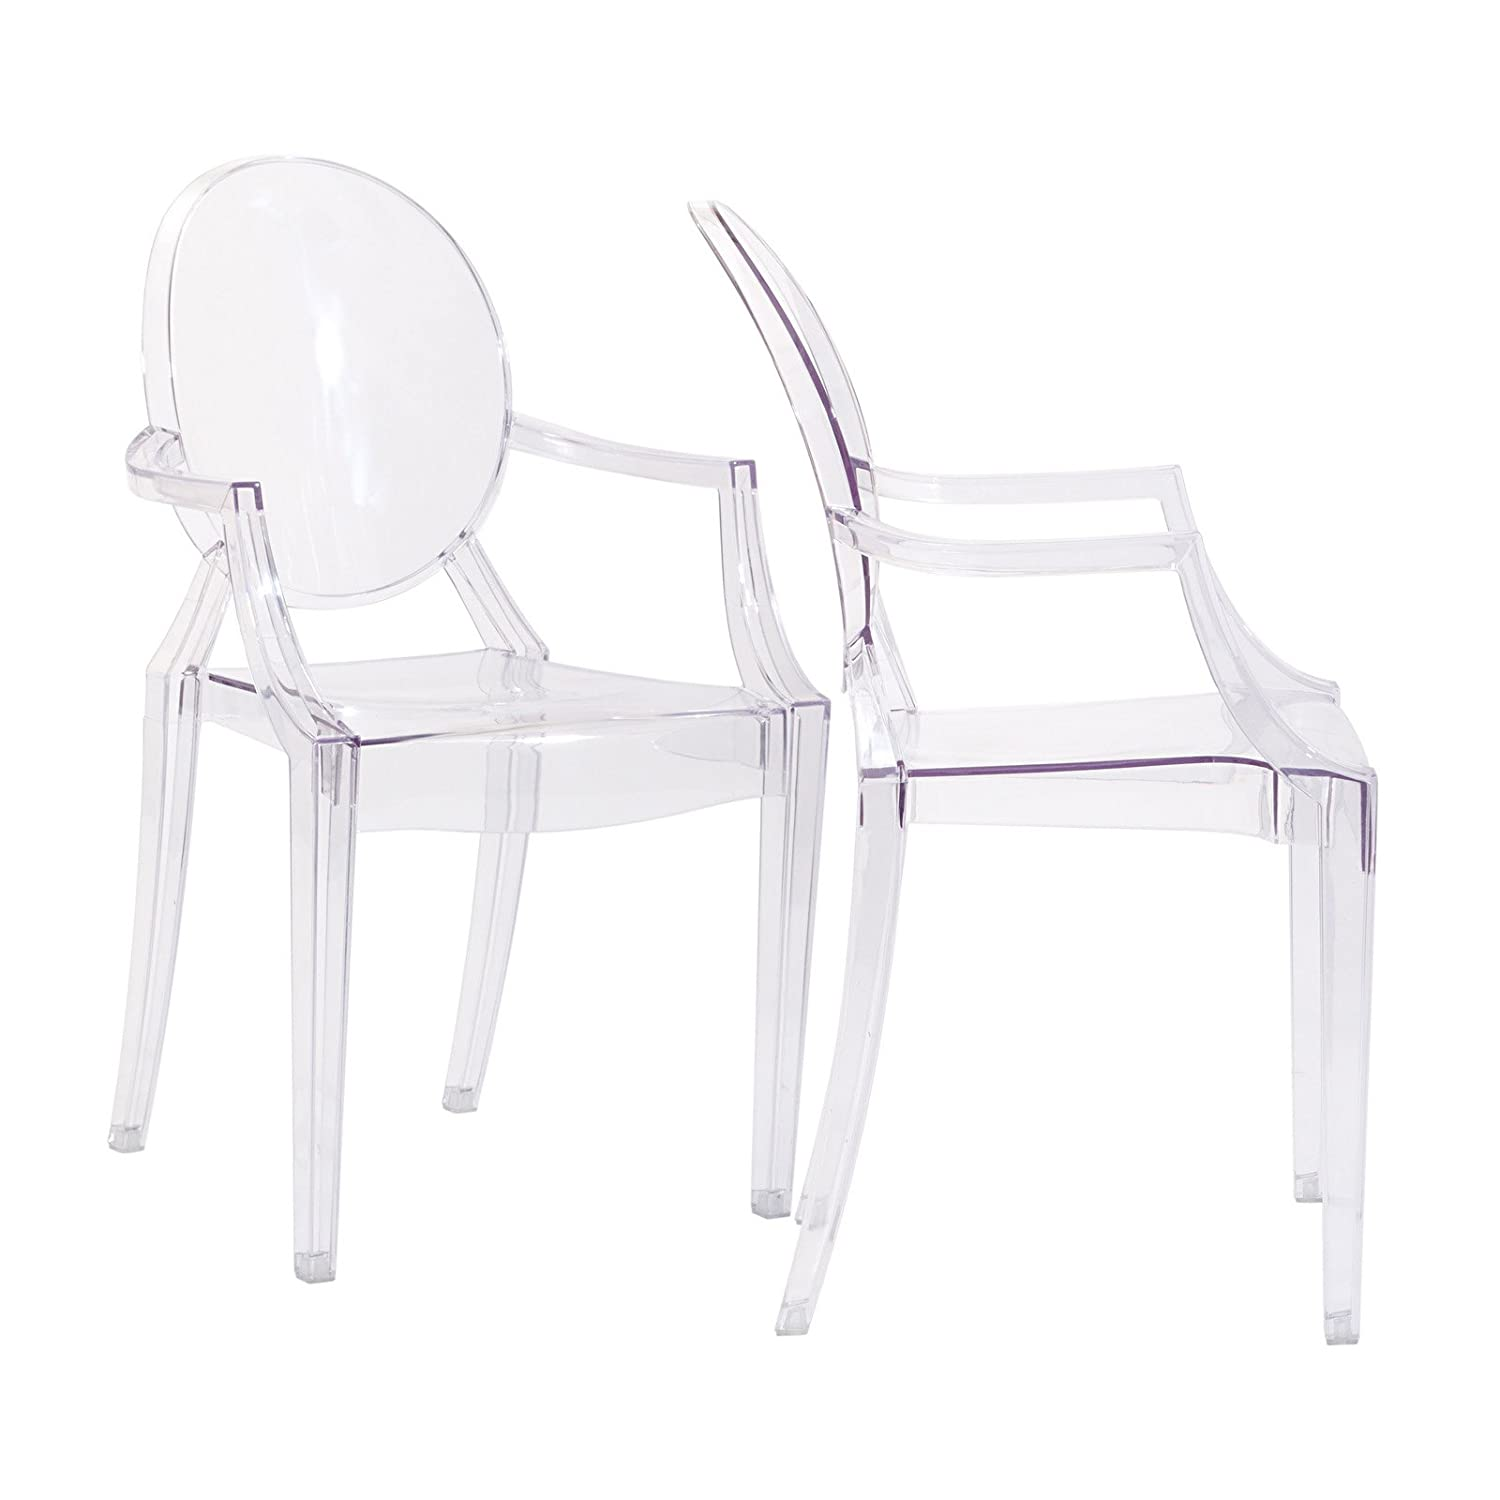 Amazon.com: Modway Miniature Casper Novelty Chair In Clear: Kitchen U0026 Dining